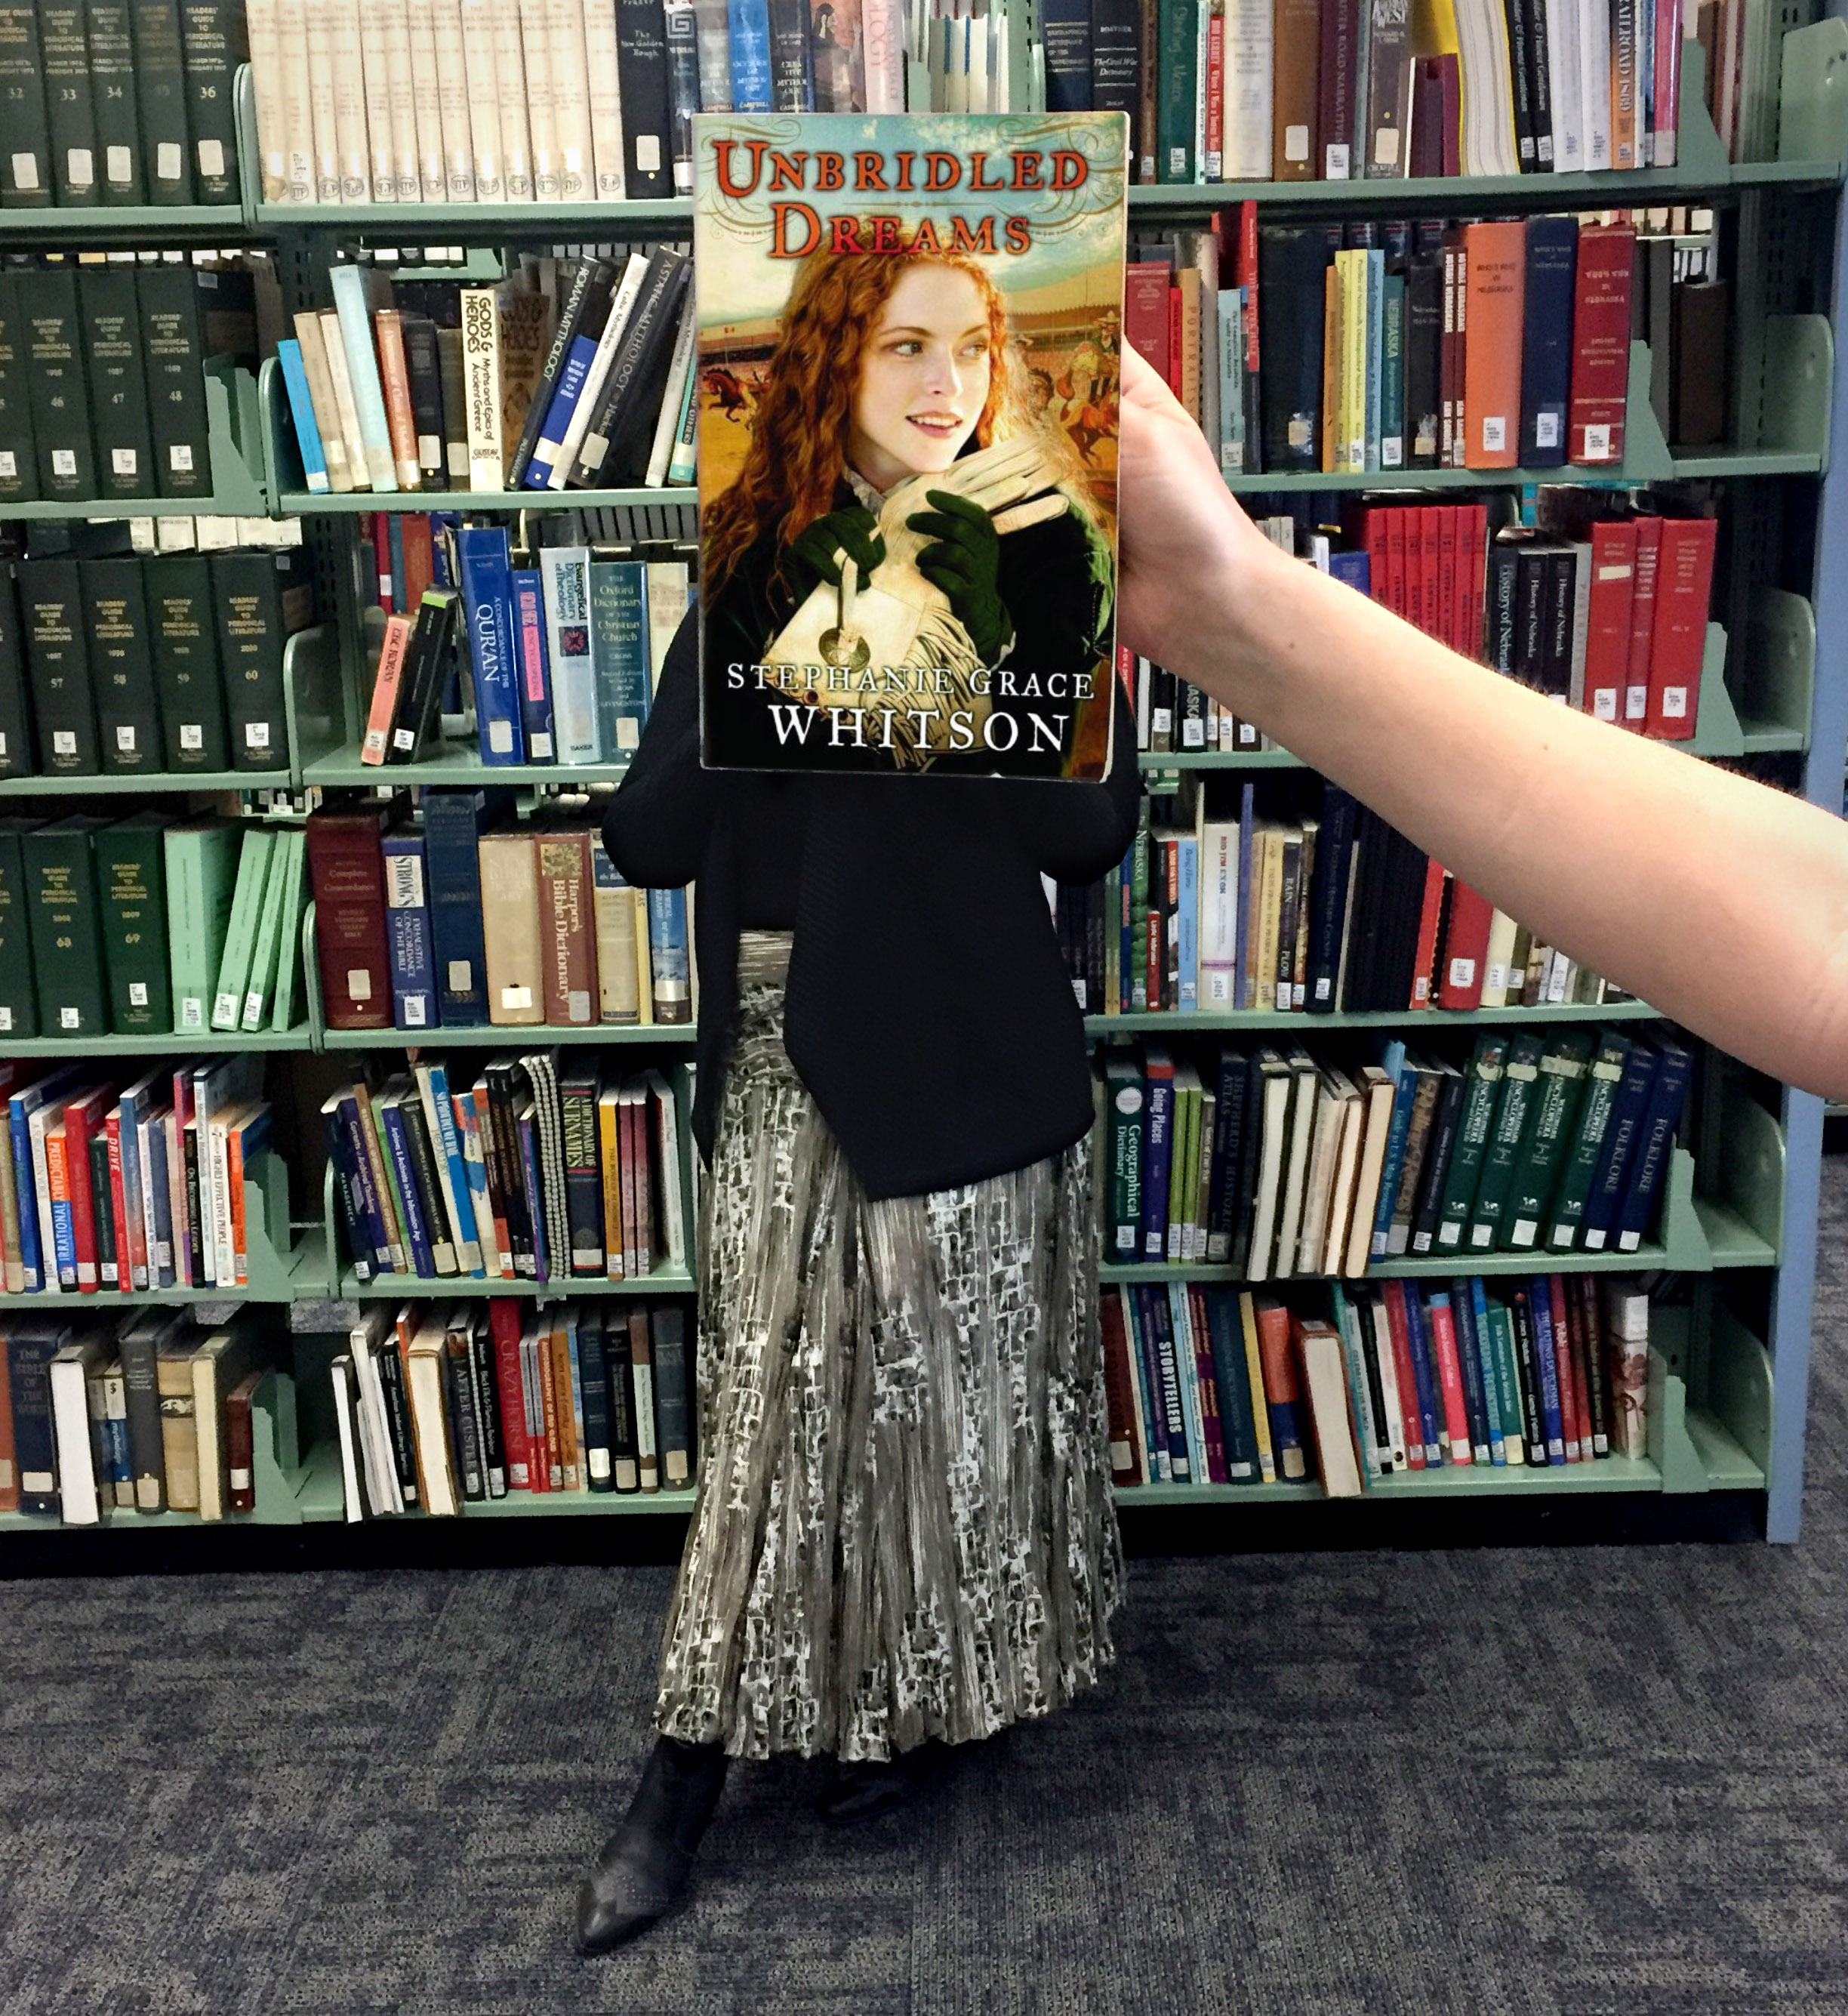 Unbridled Dreams BookFaceFriday